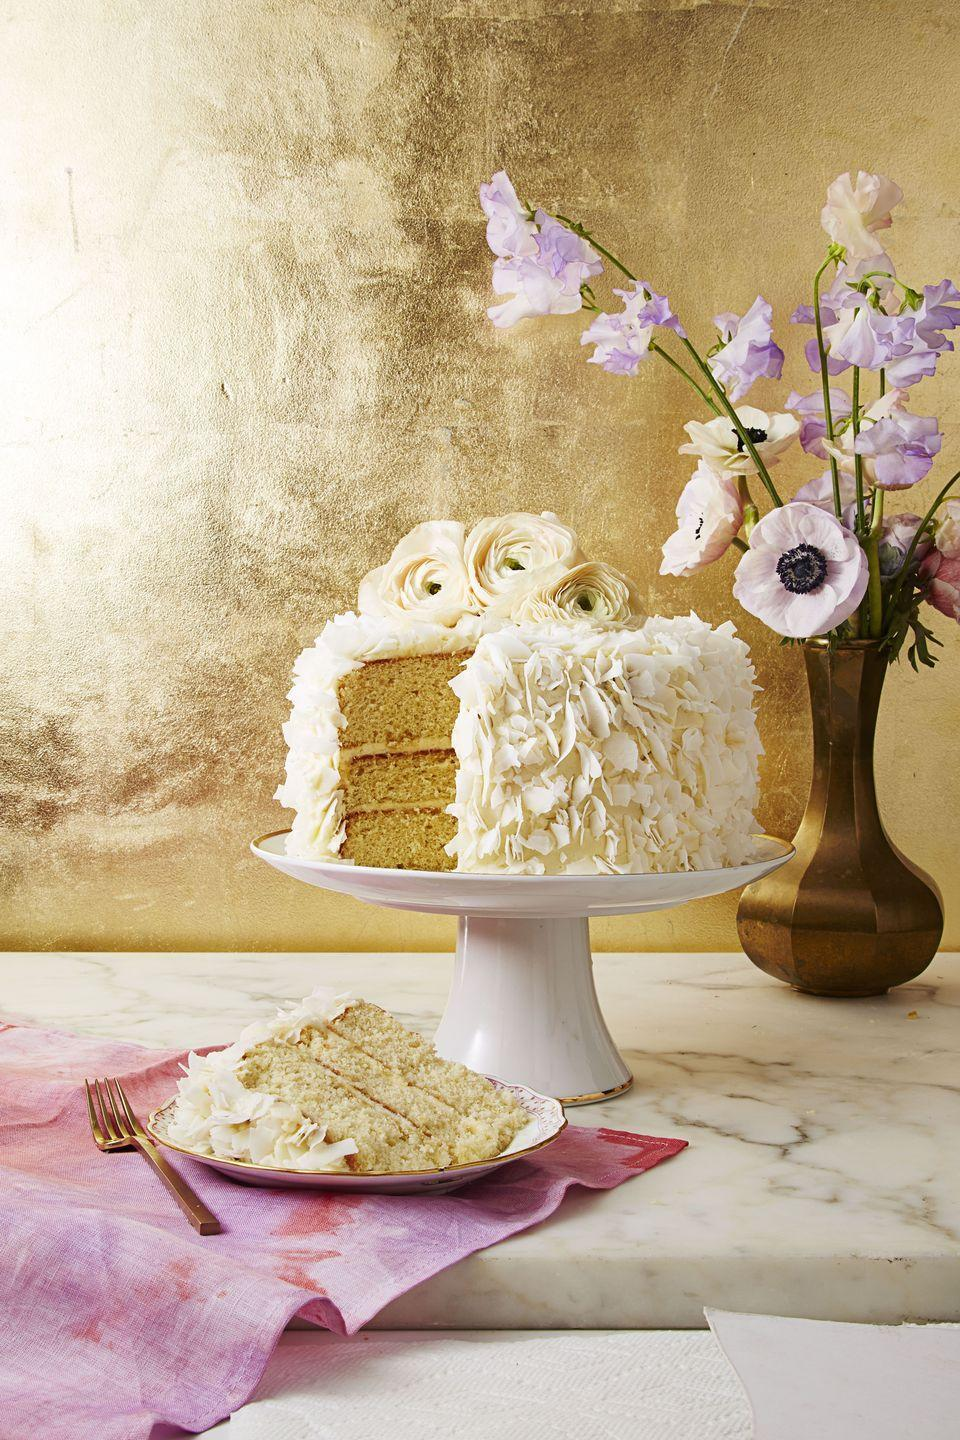 "<p>Between the buttercream layers and coconut flakes, this cake is the definition of ""showstopper.""</p><p><a href=""https://www.goodhousekeeping.com/food-recipes/a37460/coconut-layer-cake-with-cream-cheese-frosting-recipe/"" rel=""nofollow noopener"" target=""_blank"" data-ylk=""slk:Get the recipe for Coconut Layer Cake with Cream Cheese Frosting »"" class=""link rapid-noclick-resp""><em>Get the recipe for Coconut Layer Cake with Cream Cheese Frosting »</em></a></p>"